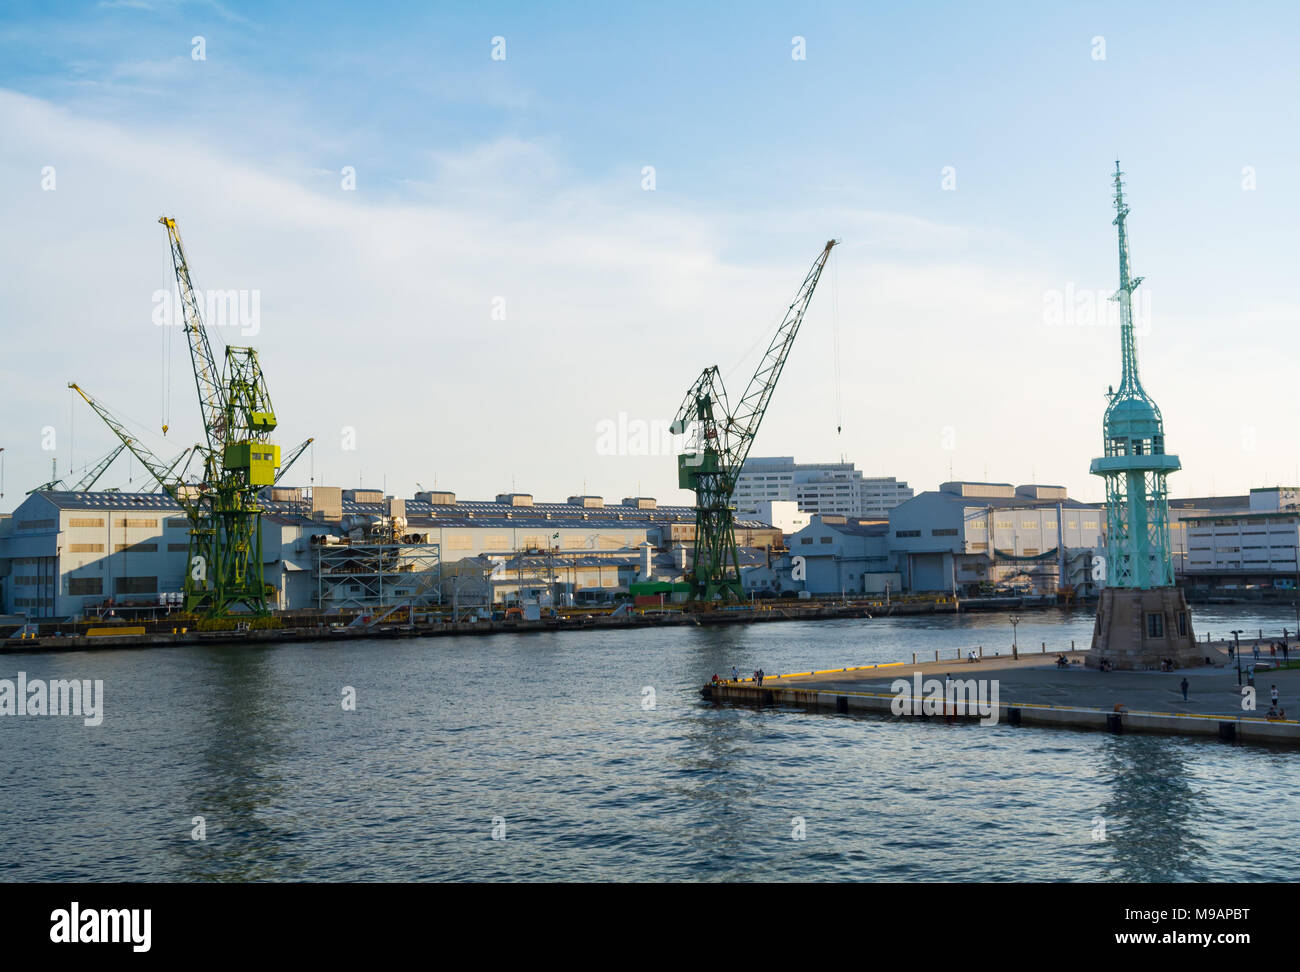 Kawasaki Heavy Industries Kobe Works, kobe, hyogo prefecture, japan Stock Photo